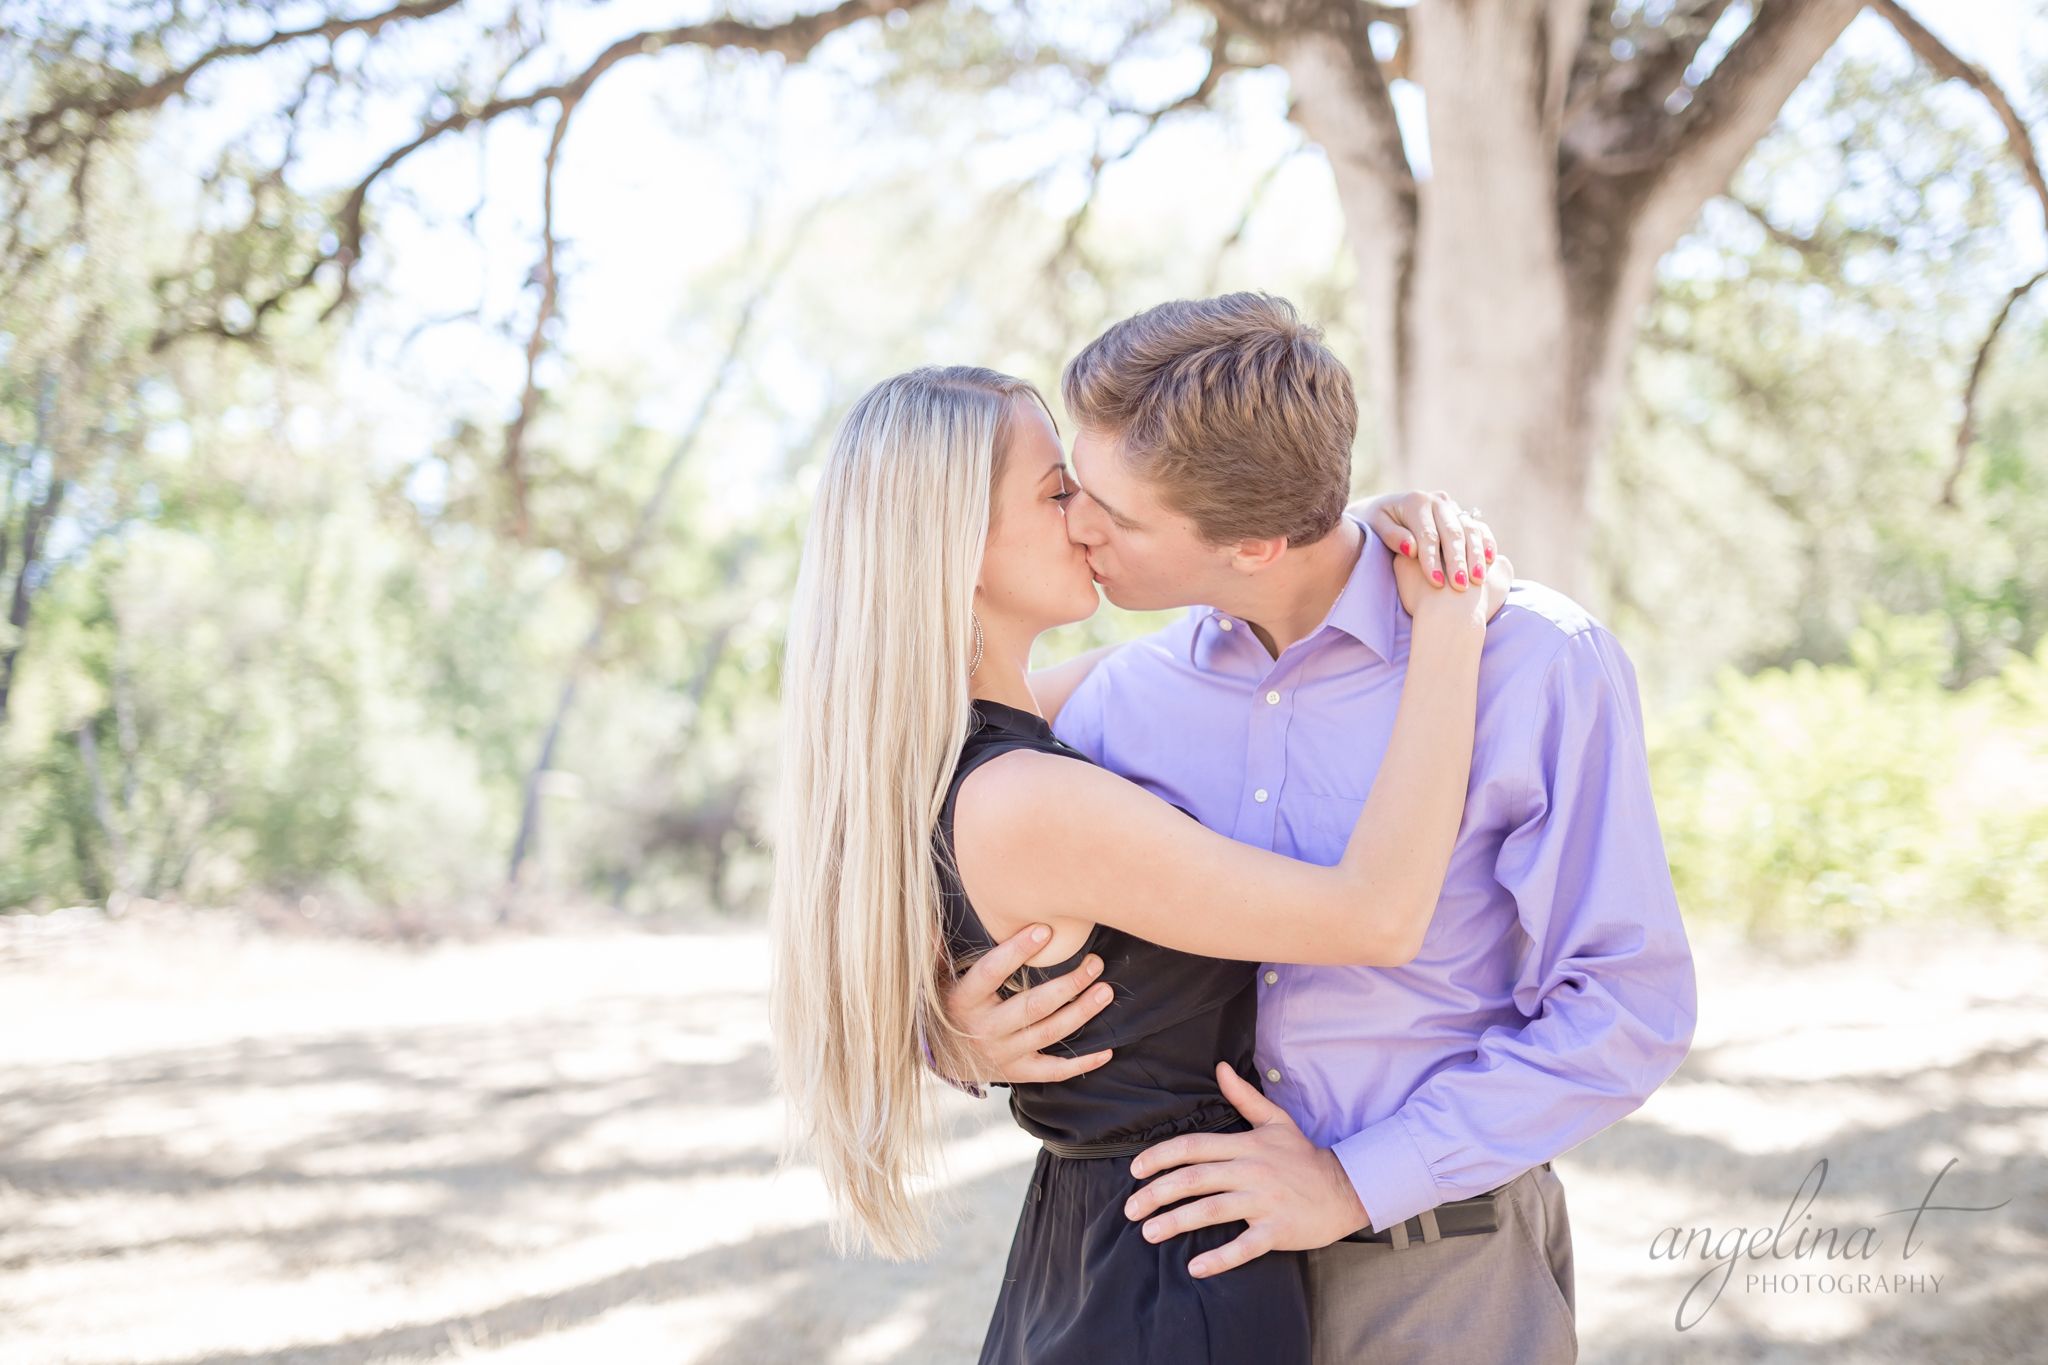 Best-Sacramento-Engagement-Photography-El-Dorado-Hills-05.jpg